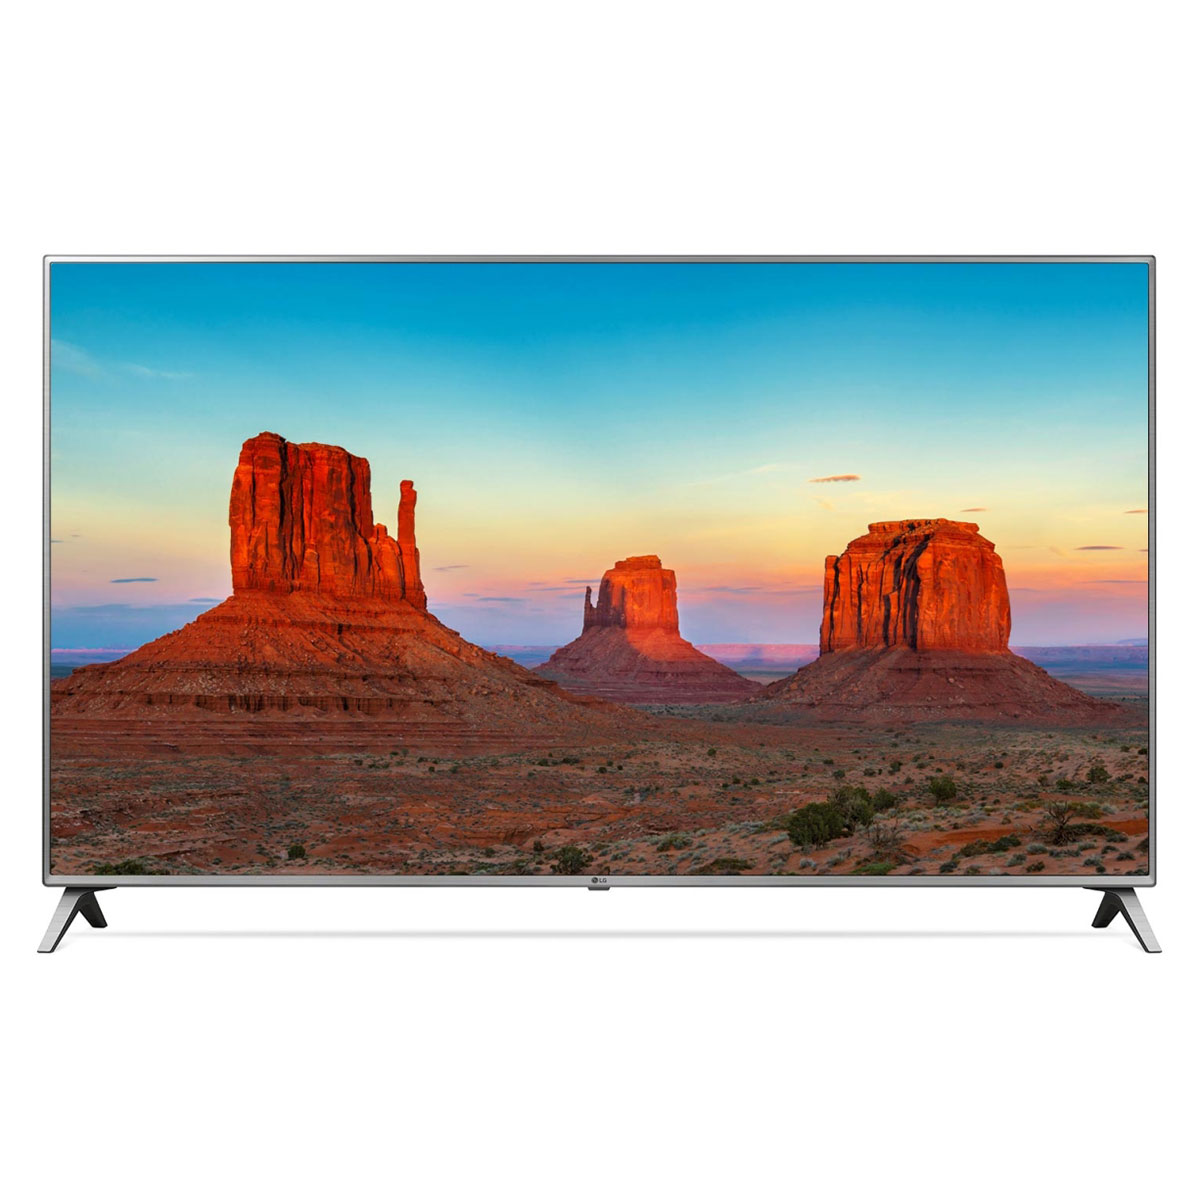 "TV LG 75UK6500 Téléviseur LED 4K 75"" (190 cm) 16/9 - 3840 x 2160 pixels - Ultra HD 2160p - HDR - Wi-Fi - Bluetooth - 2000 Hz"